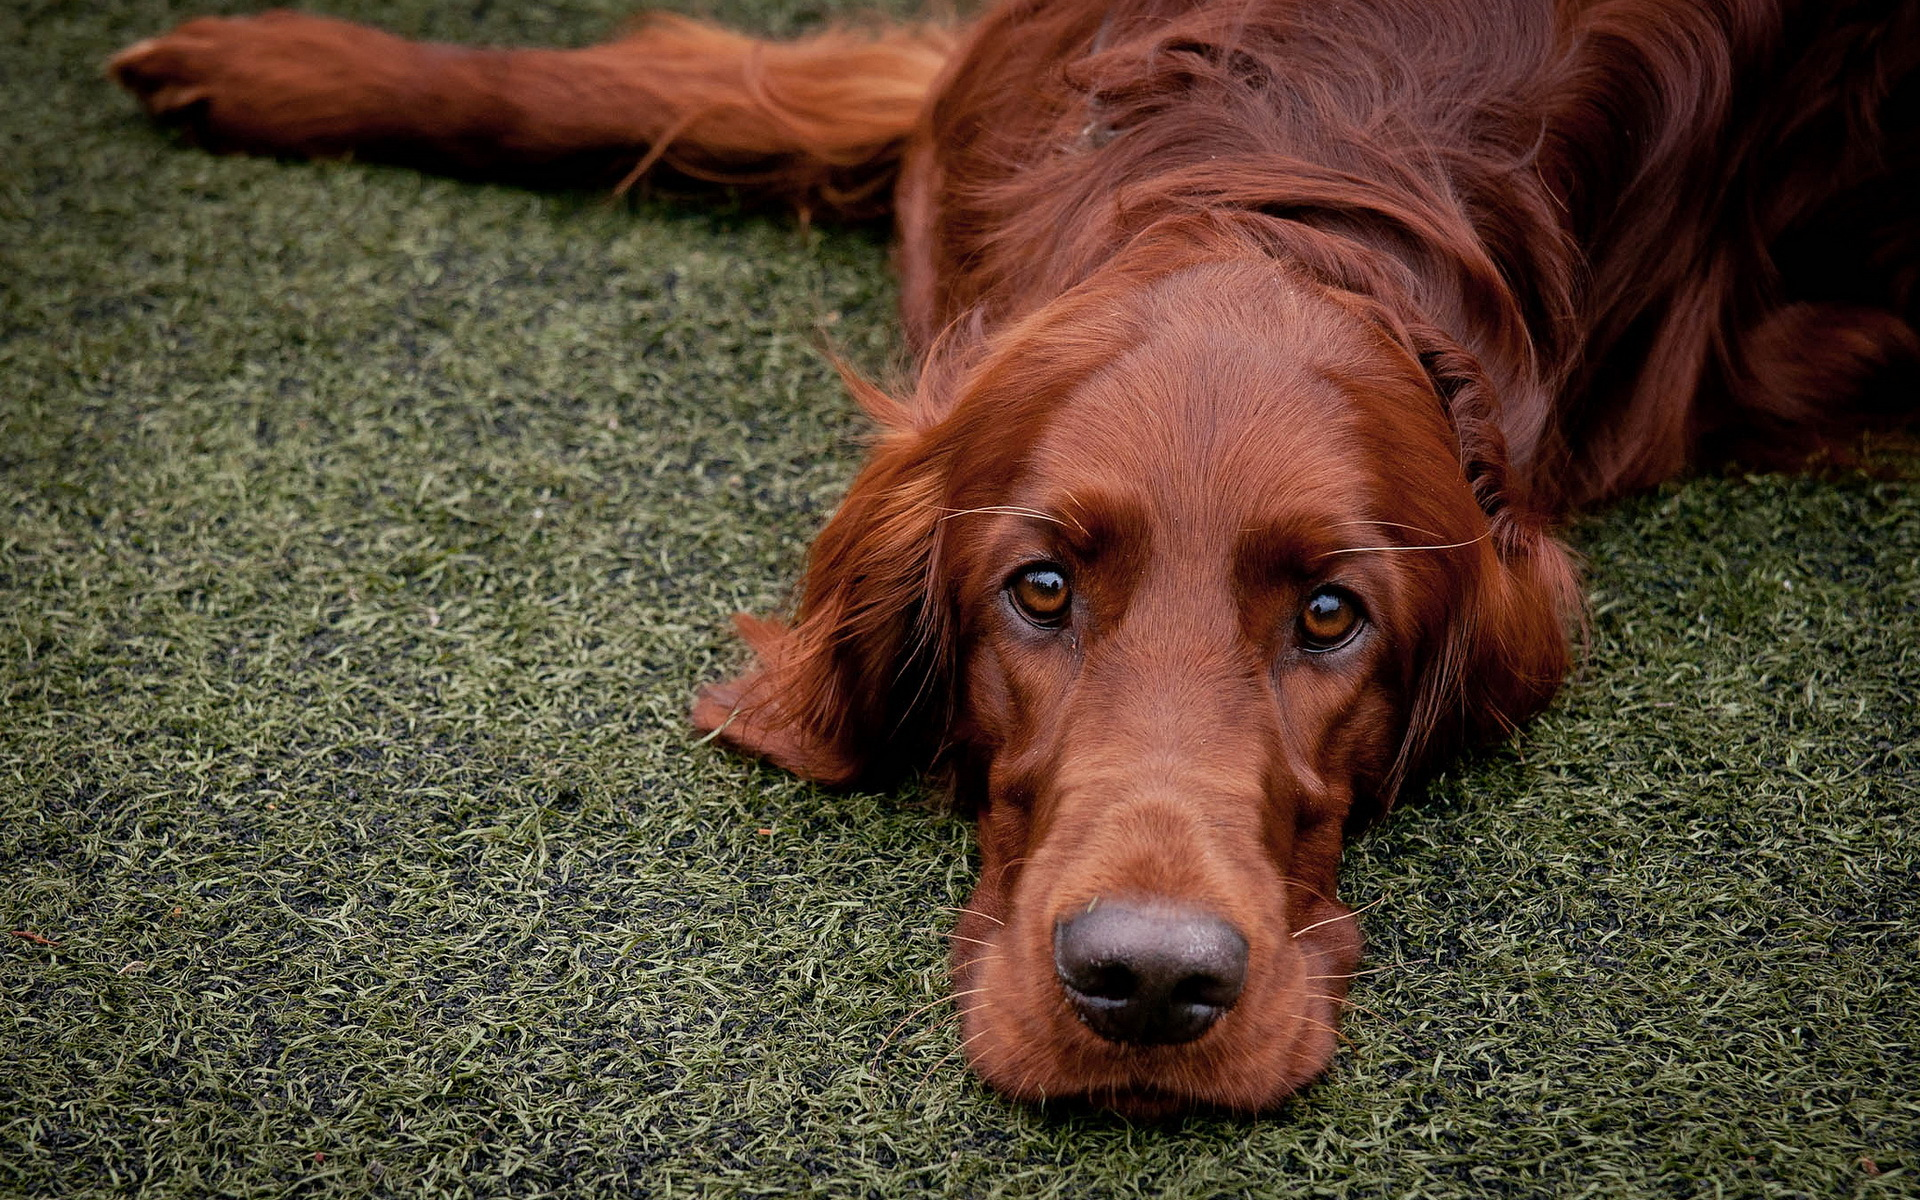 HQ Irish Setter Wallpapers | File 1043.48Kb